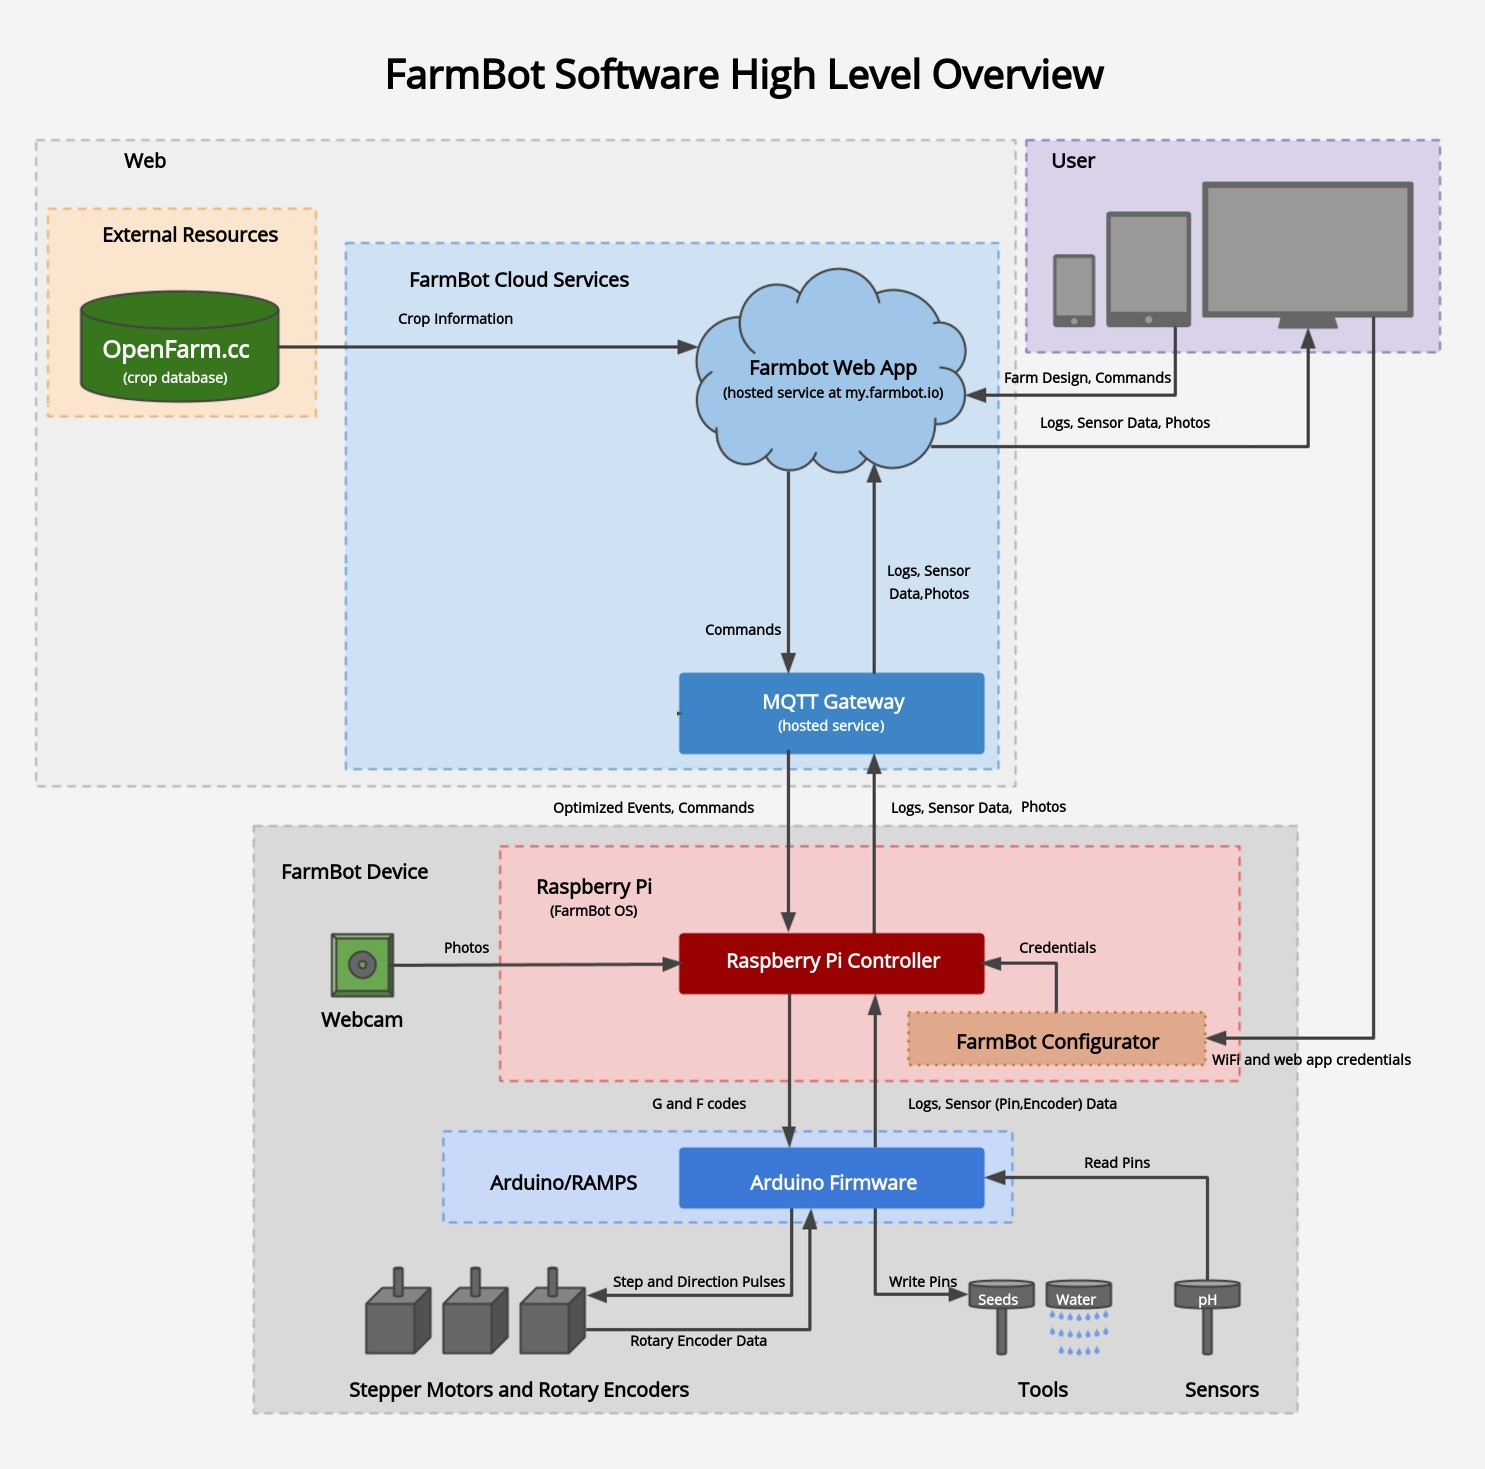 farmbot software high level overview